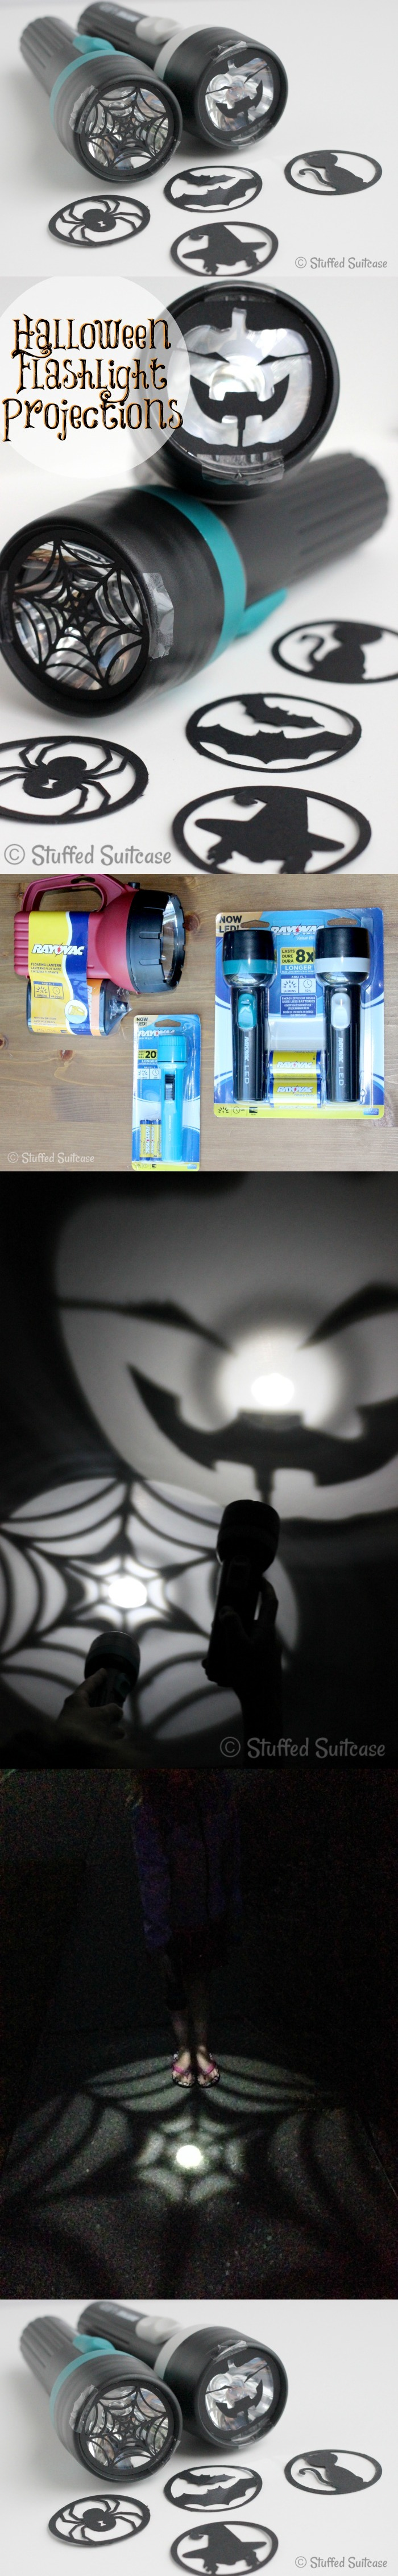 6. Halloween Flashlight Projection Craft